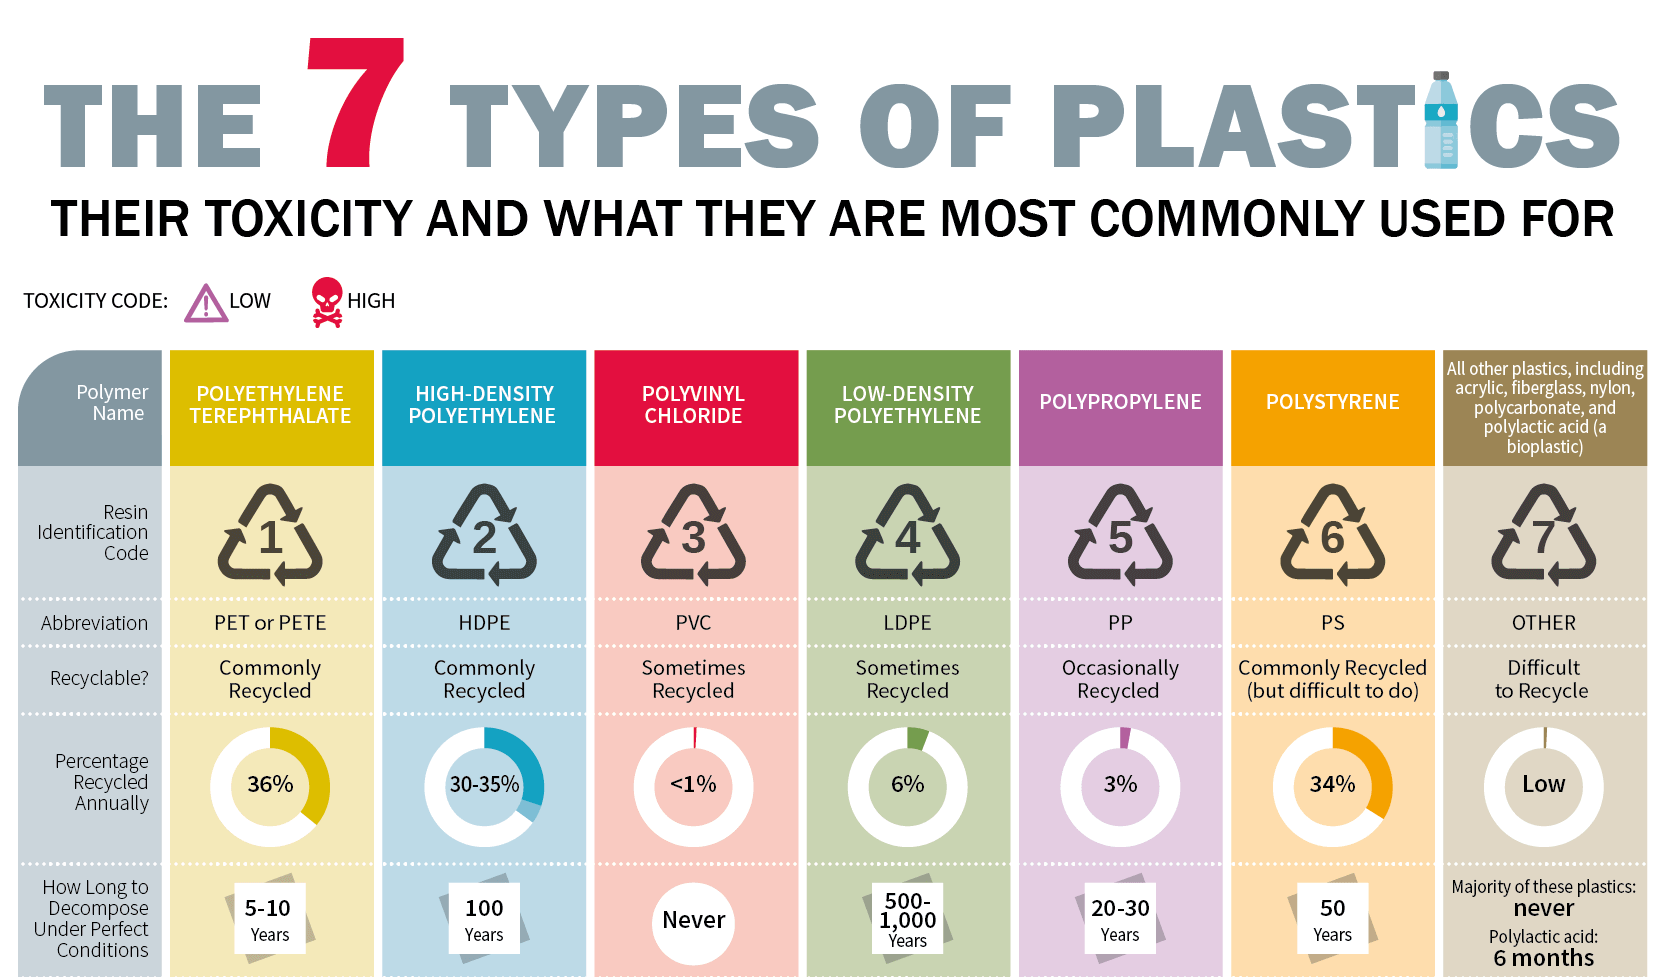 7 Types of Plastics: Their Toxicity & What They're Most Commonly Used For